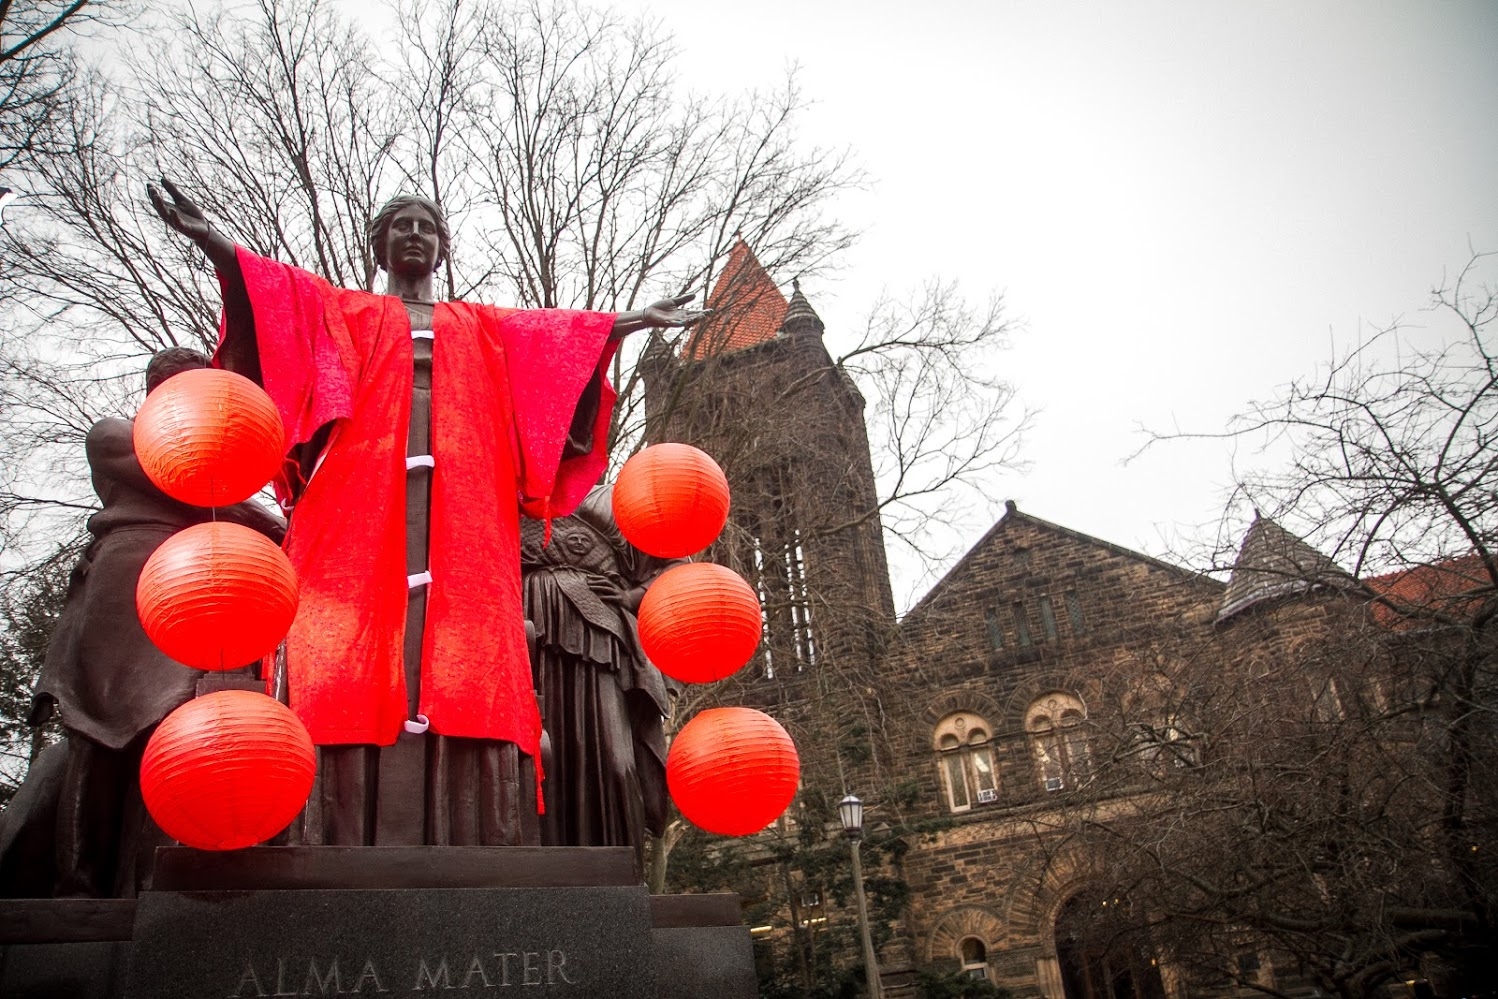 The Alma Mater decorated in commemoration of Chinese New Year on Feb. 5, 2019.